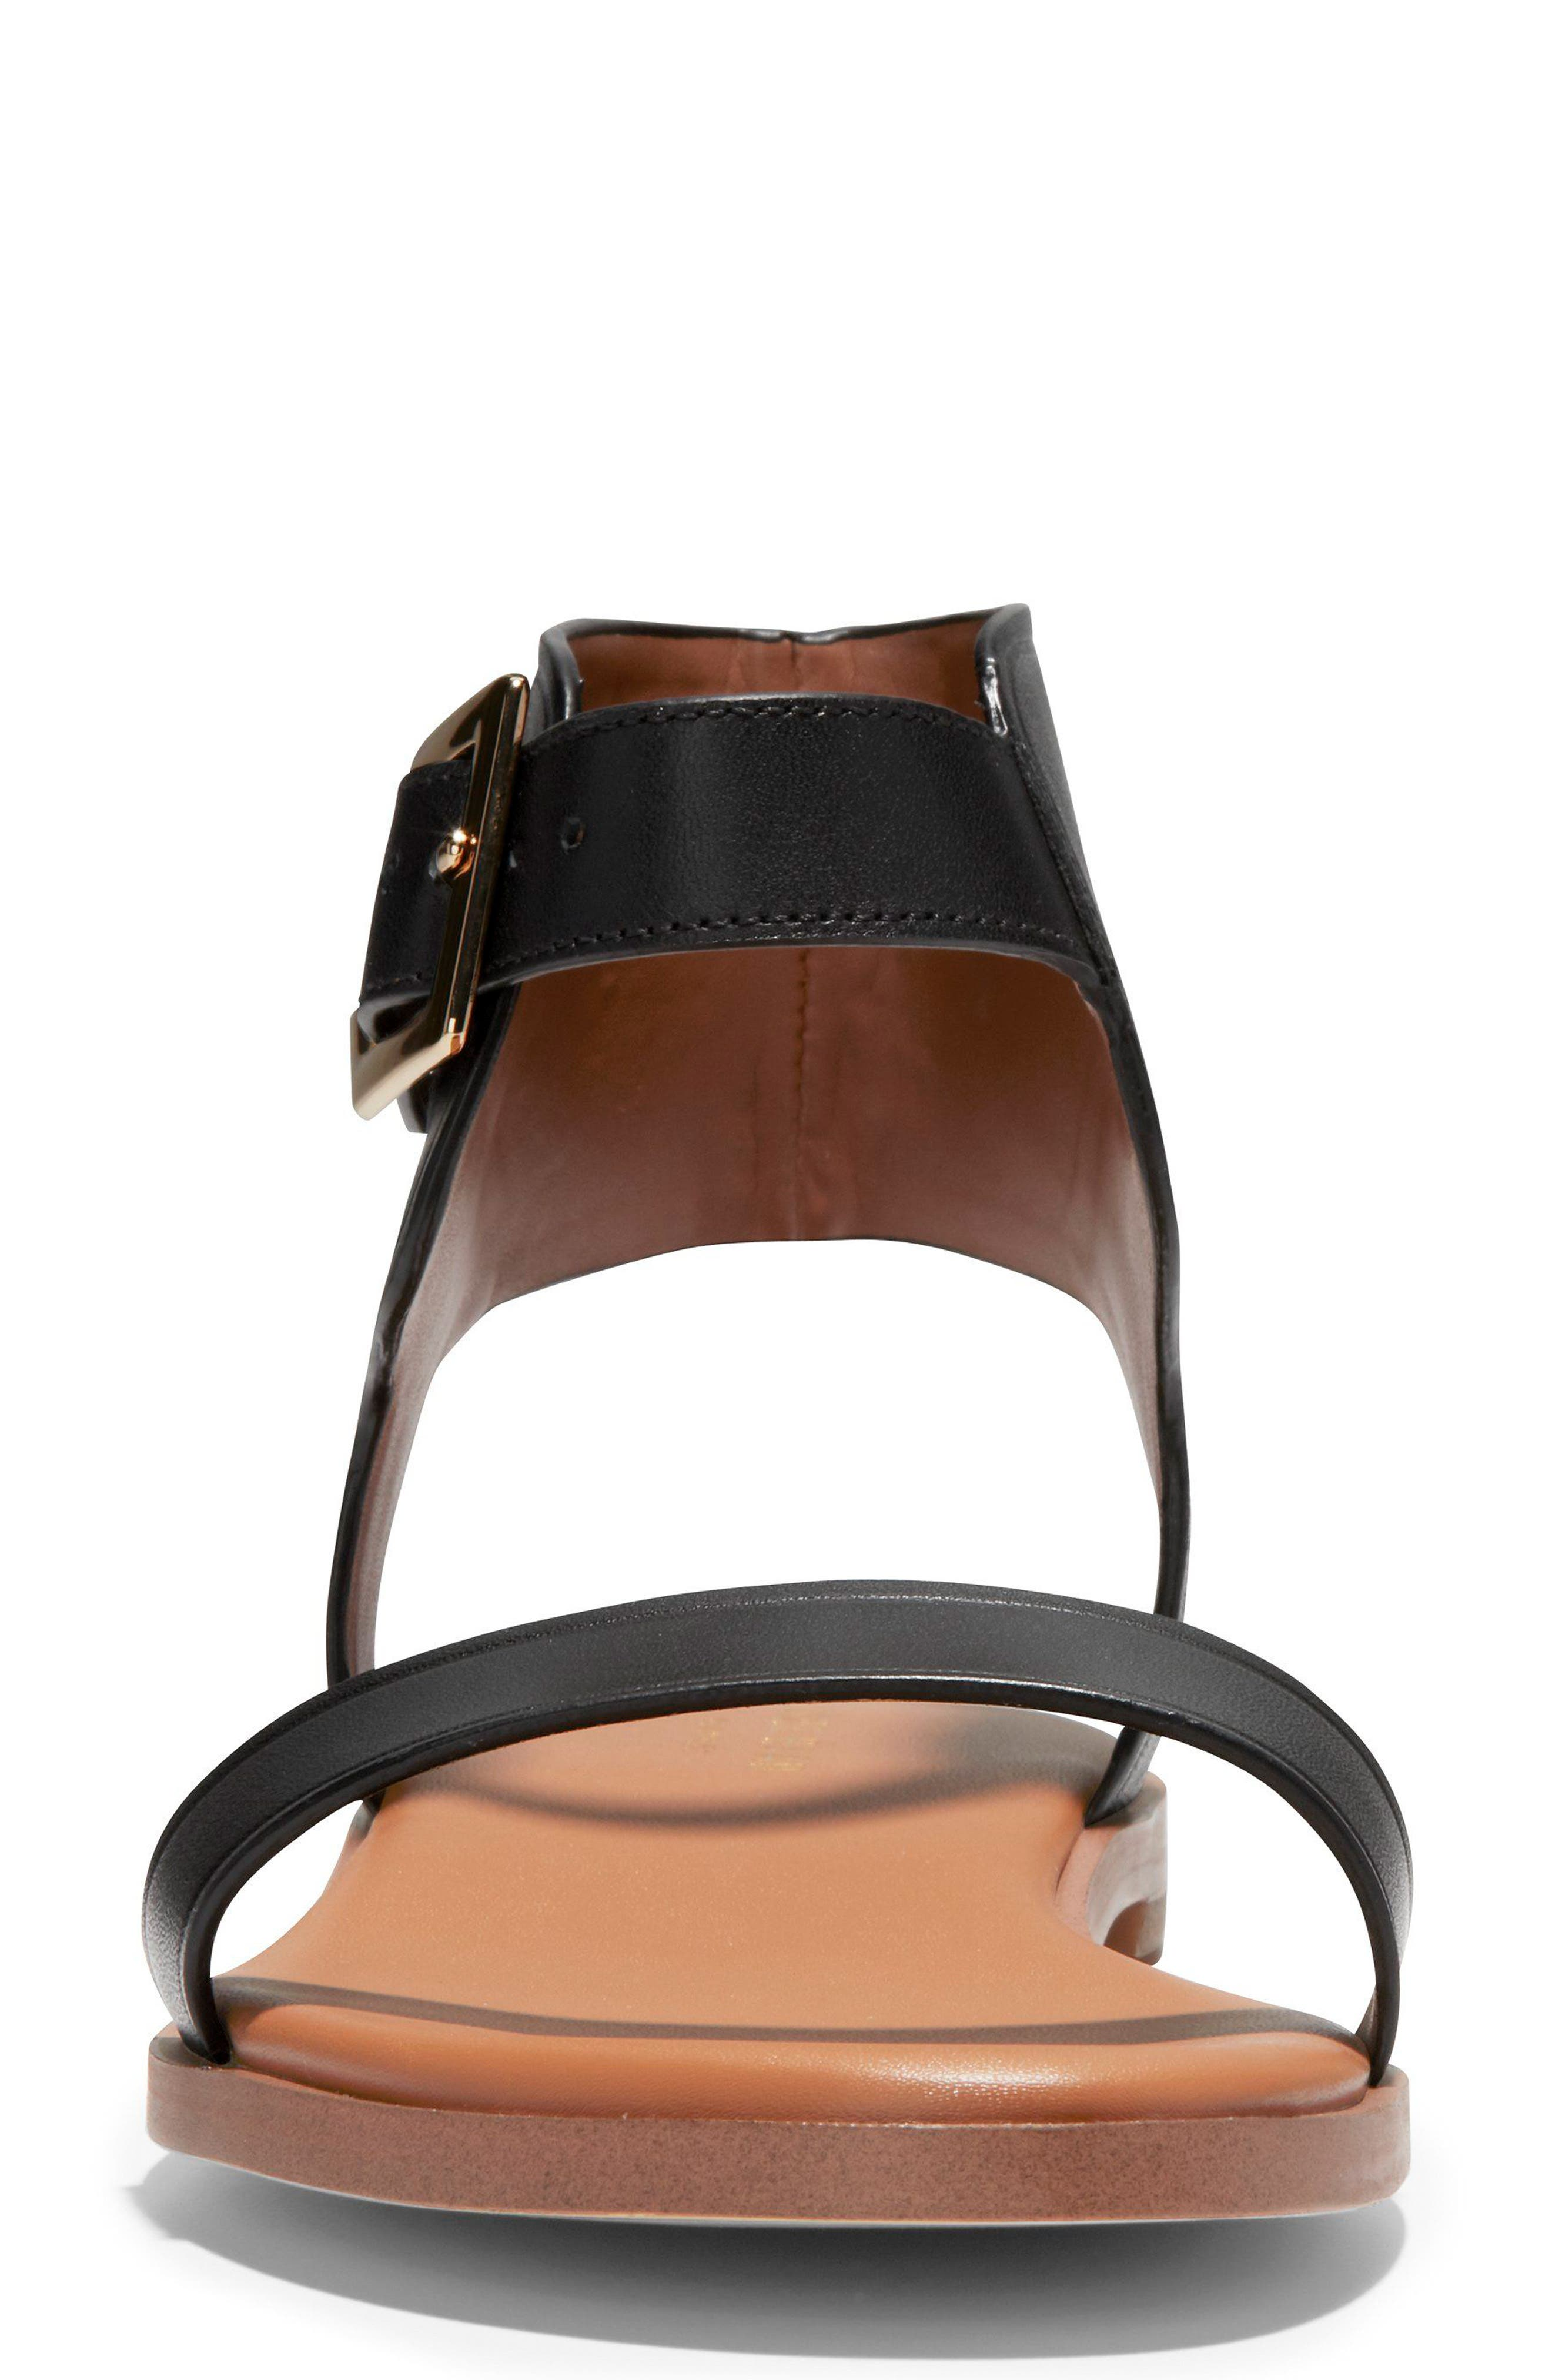 COLE HAAN,                             Anica Cuffed Sandal,                             Alternate thumbnail 4, color,                             001